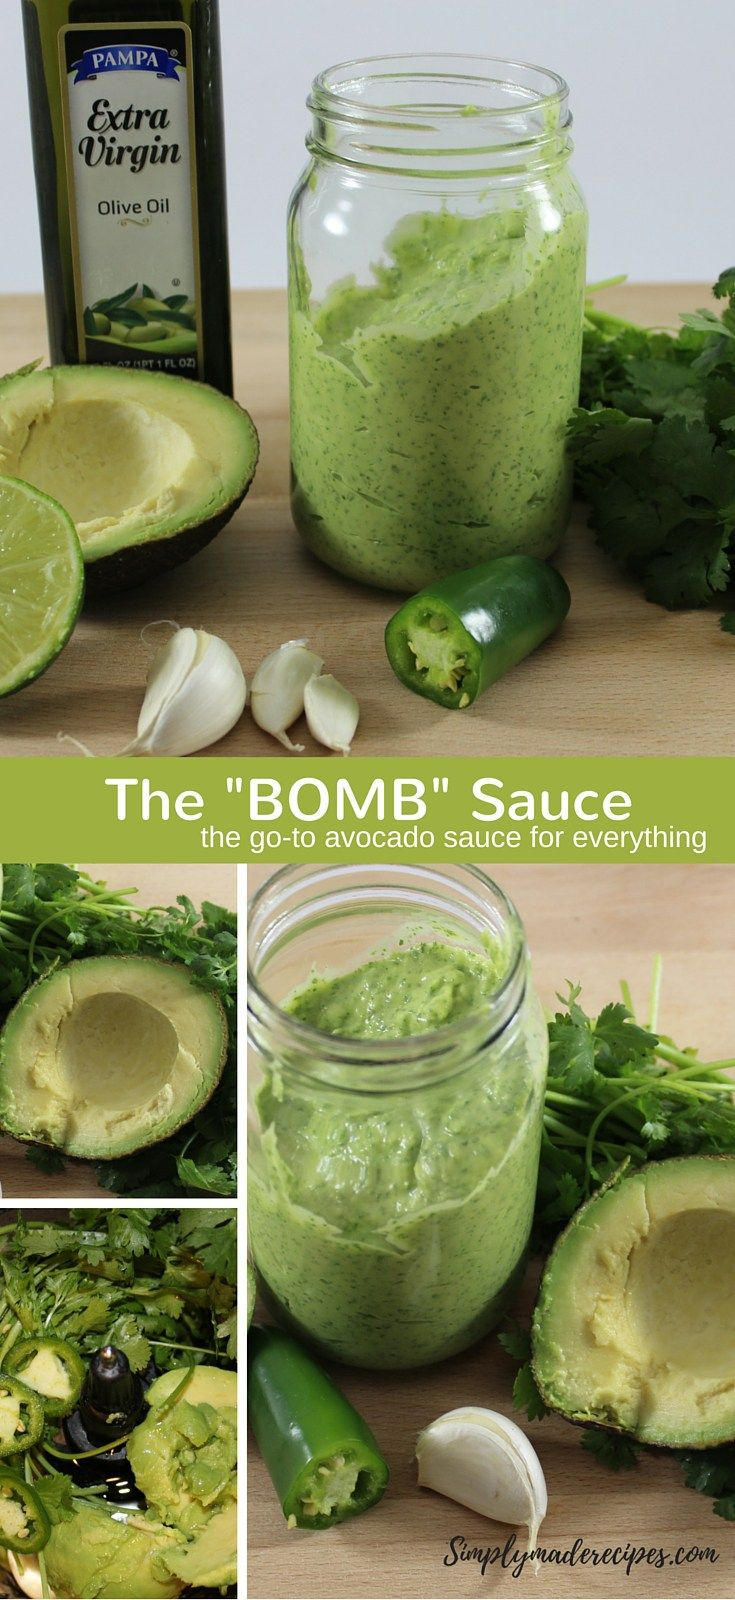 Bomb Sauce 1 avocado 1/2 cup extra virgin olive oil 1/2 jalapeno 3 garlic cloves 1/2 bunch cilantro 1/2 fresh squeezed lime